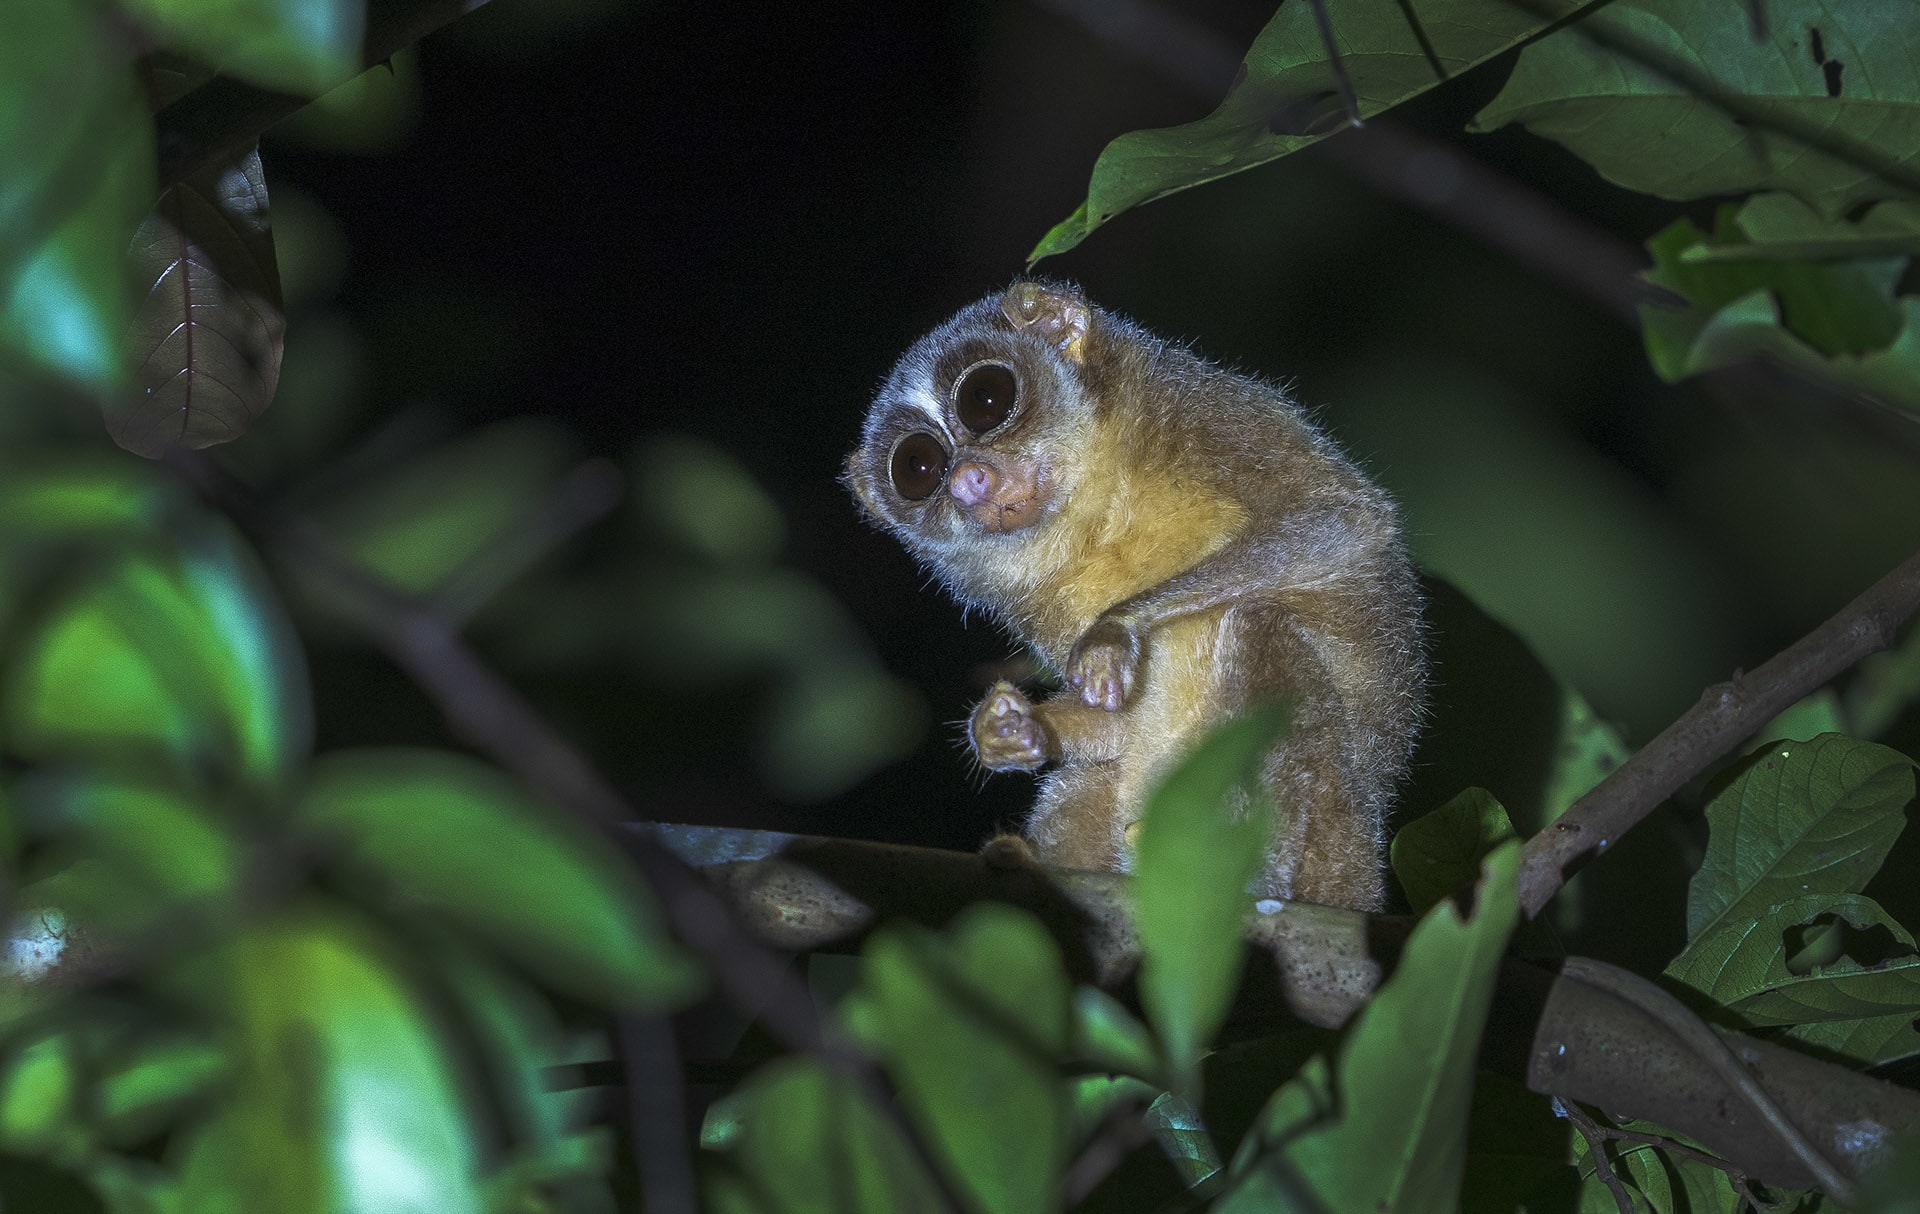 With a firm grip, the slender loris can hang for hours upside down from a branch using its feet, while using its hands to feed. Photo: Dhritiman Mukherjee